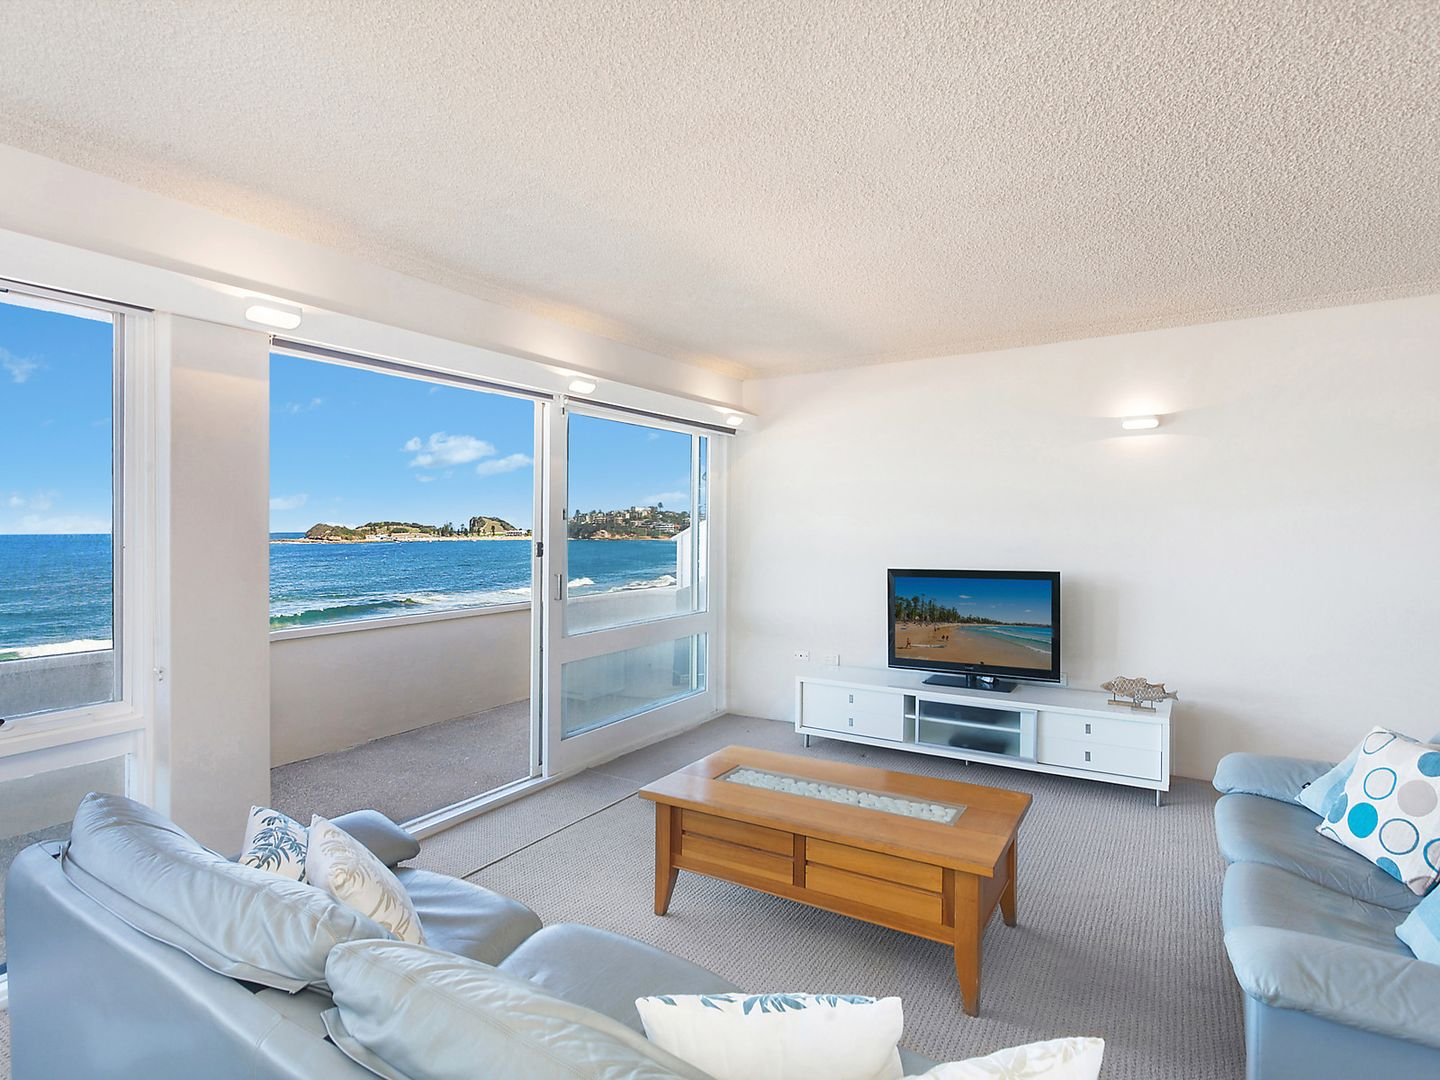 1/25 Pacific Street, Wamberal NSW 2260, Image 1